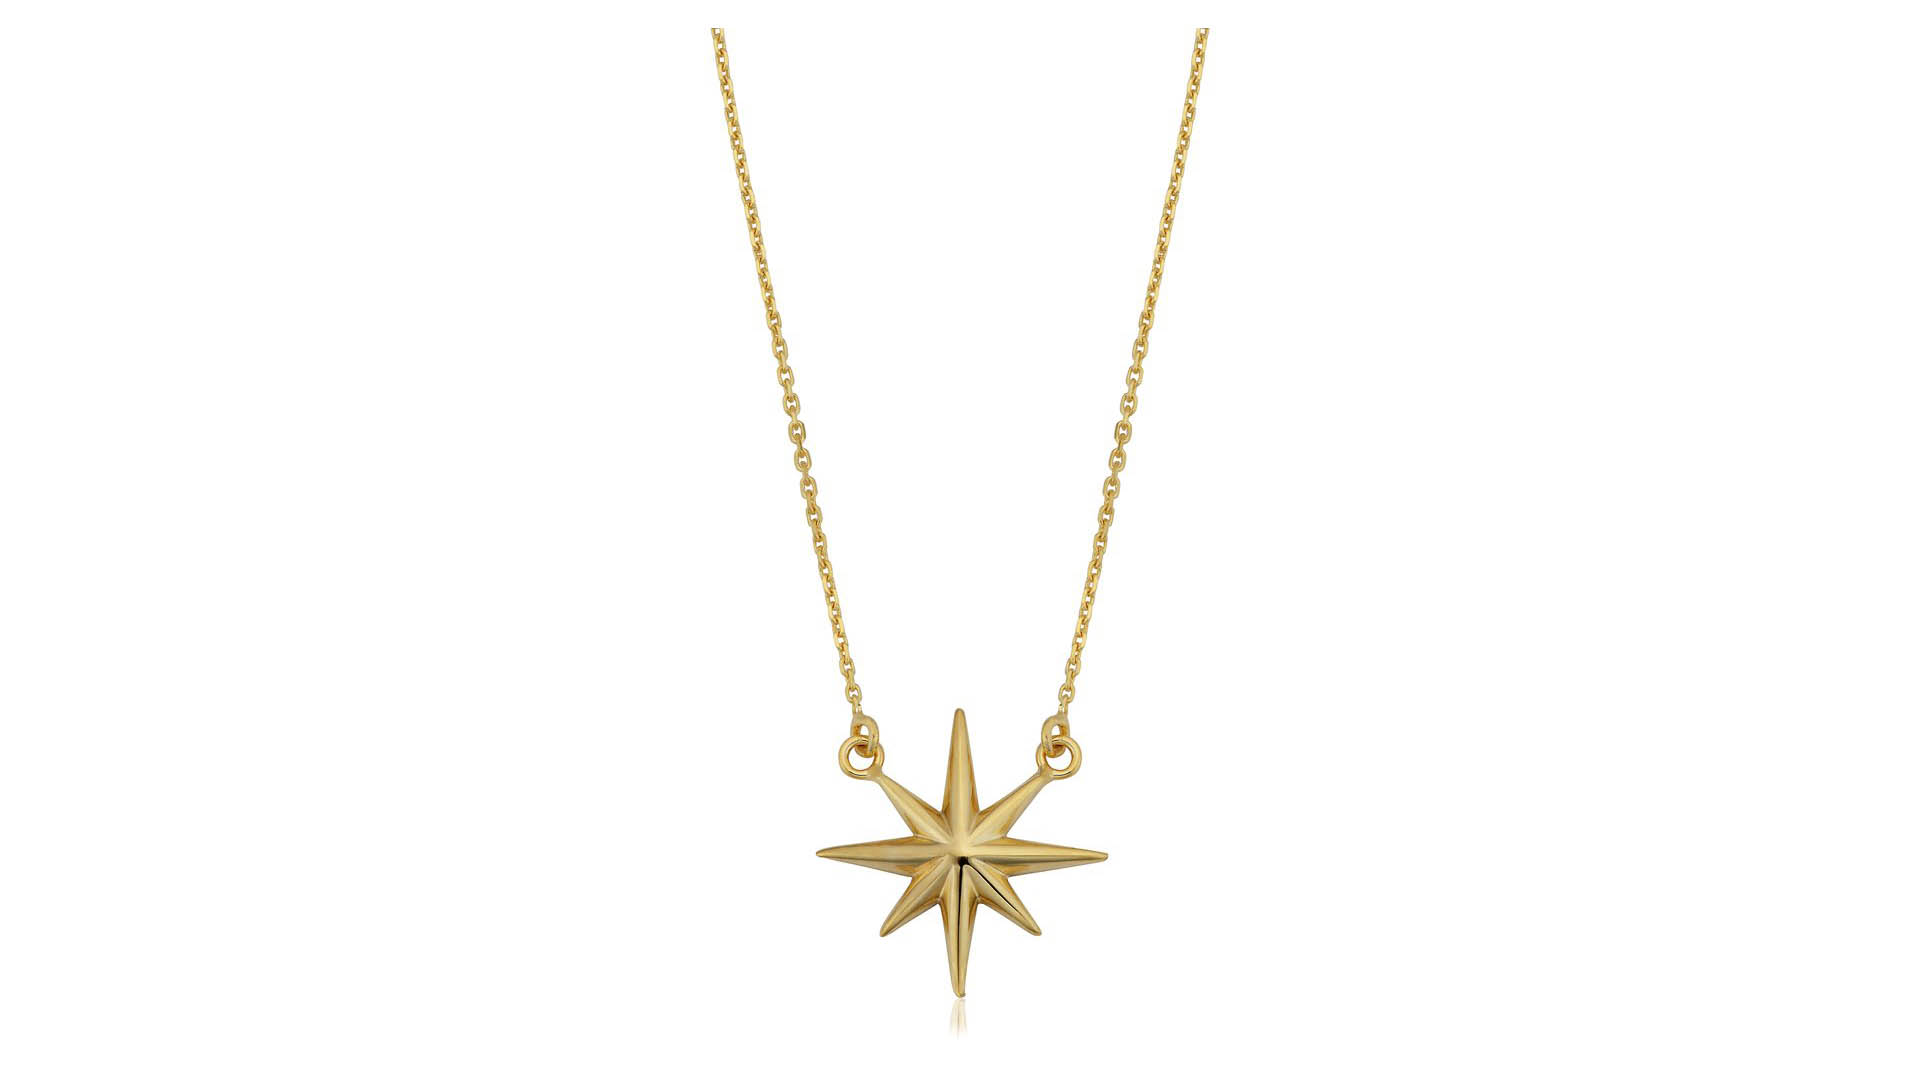 Beautiful Jewelry On Mother's Day Sale - 10k Yellow Gold North Star Pendant Necklace 18